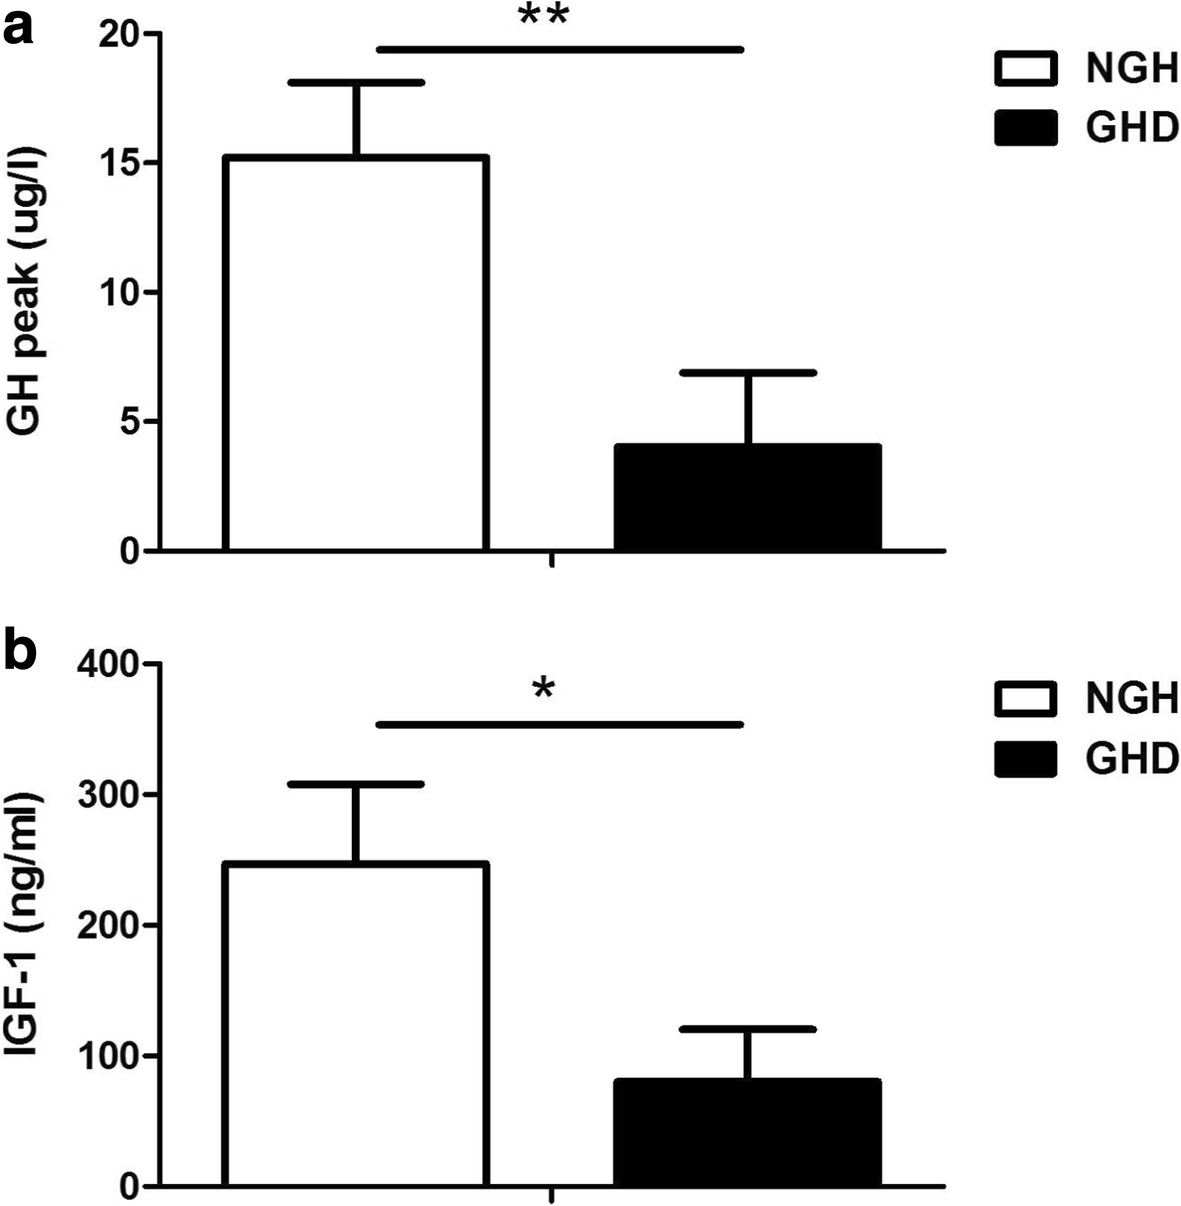 Dynamic Ghrelin and GH serum levels during combined